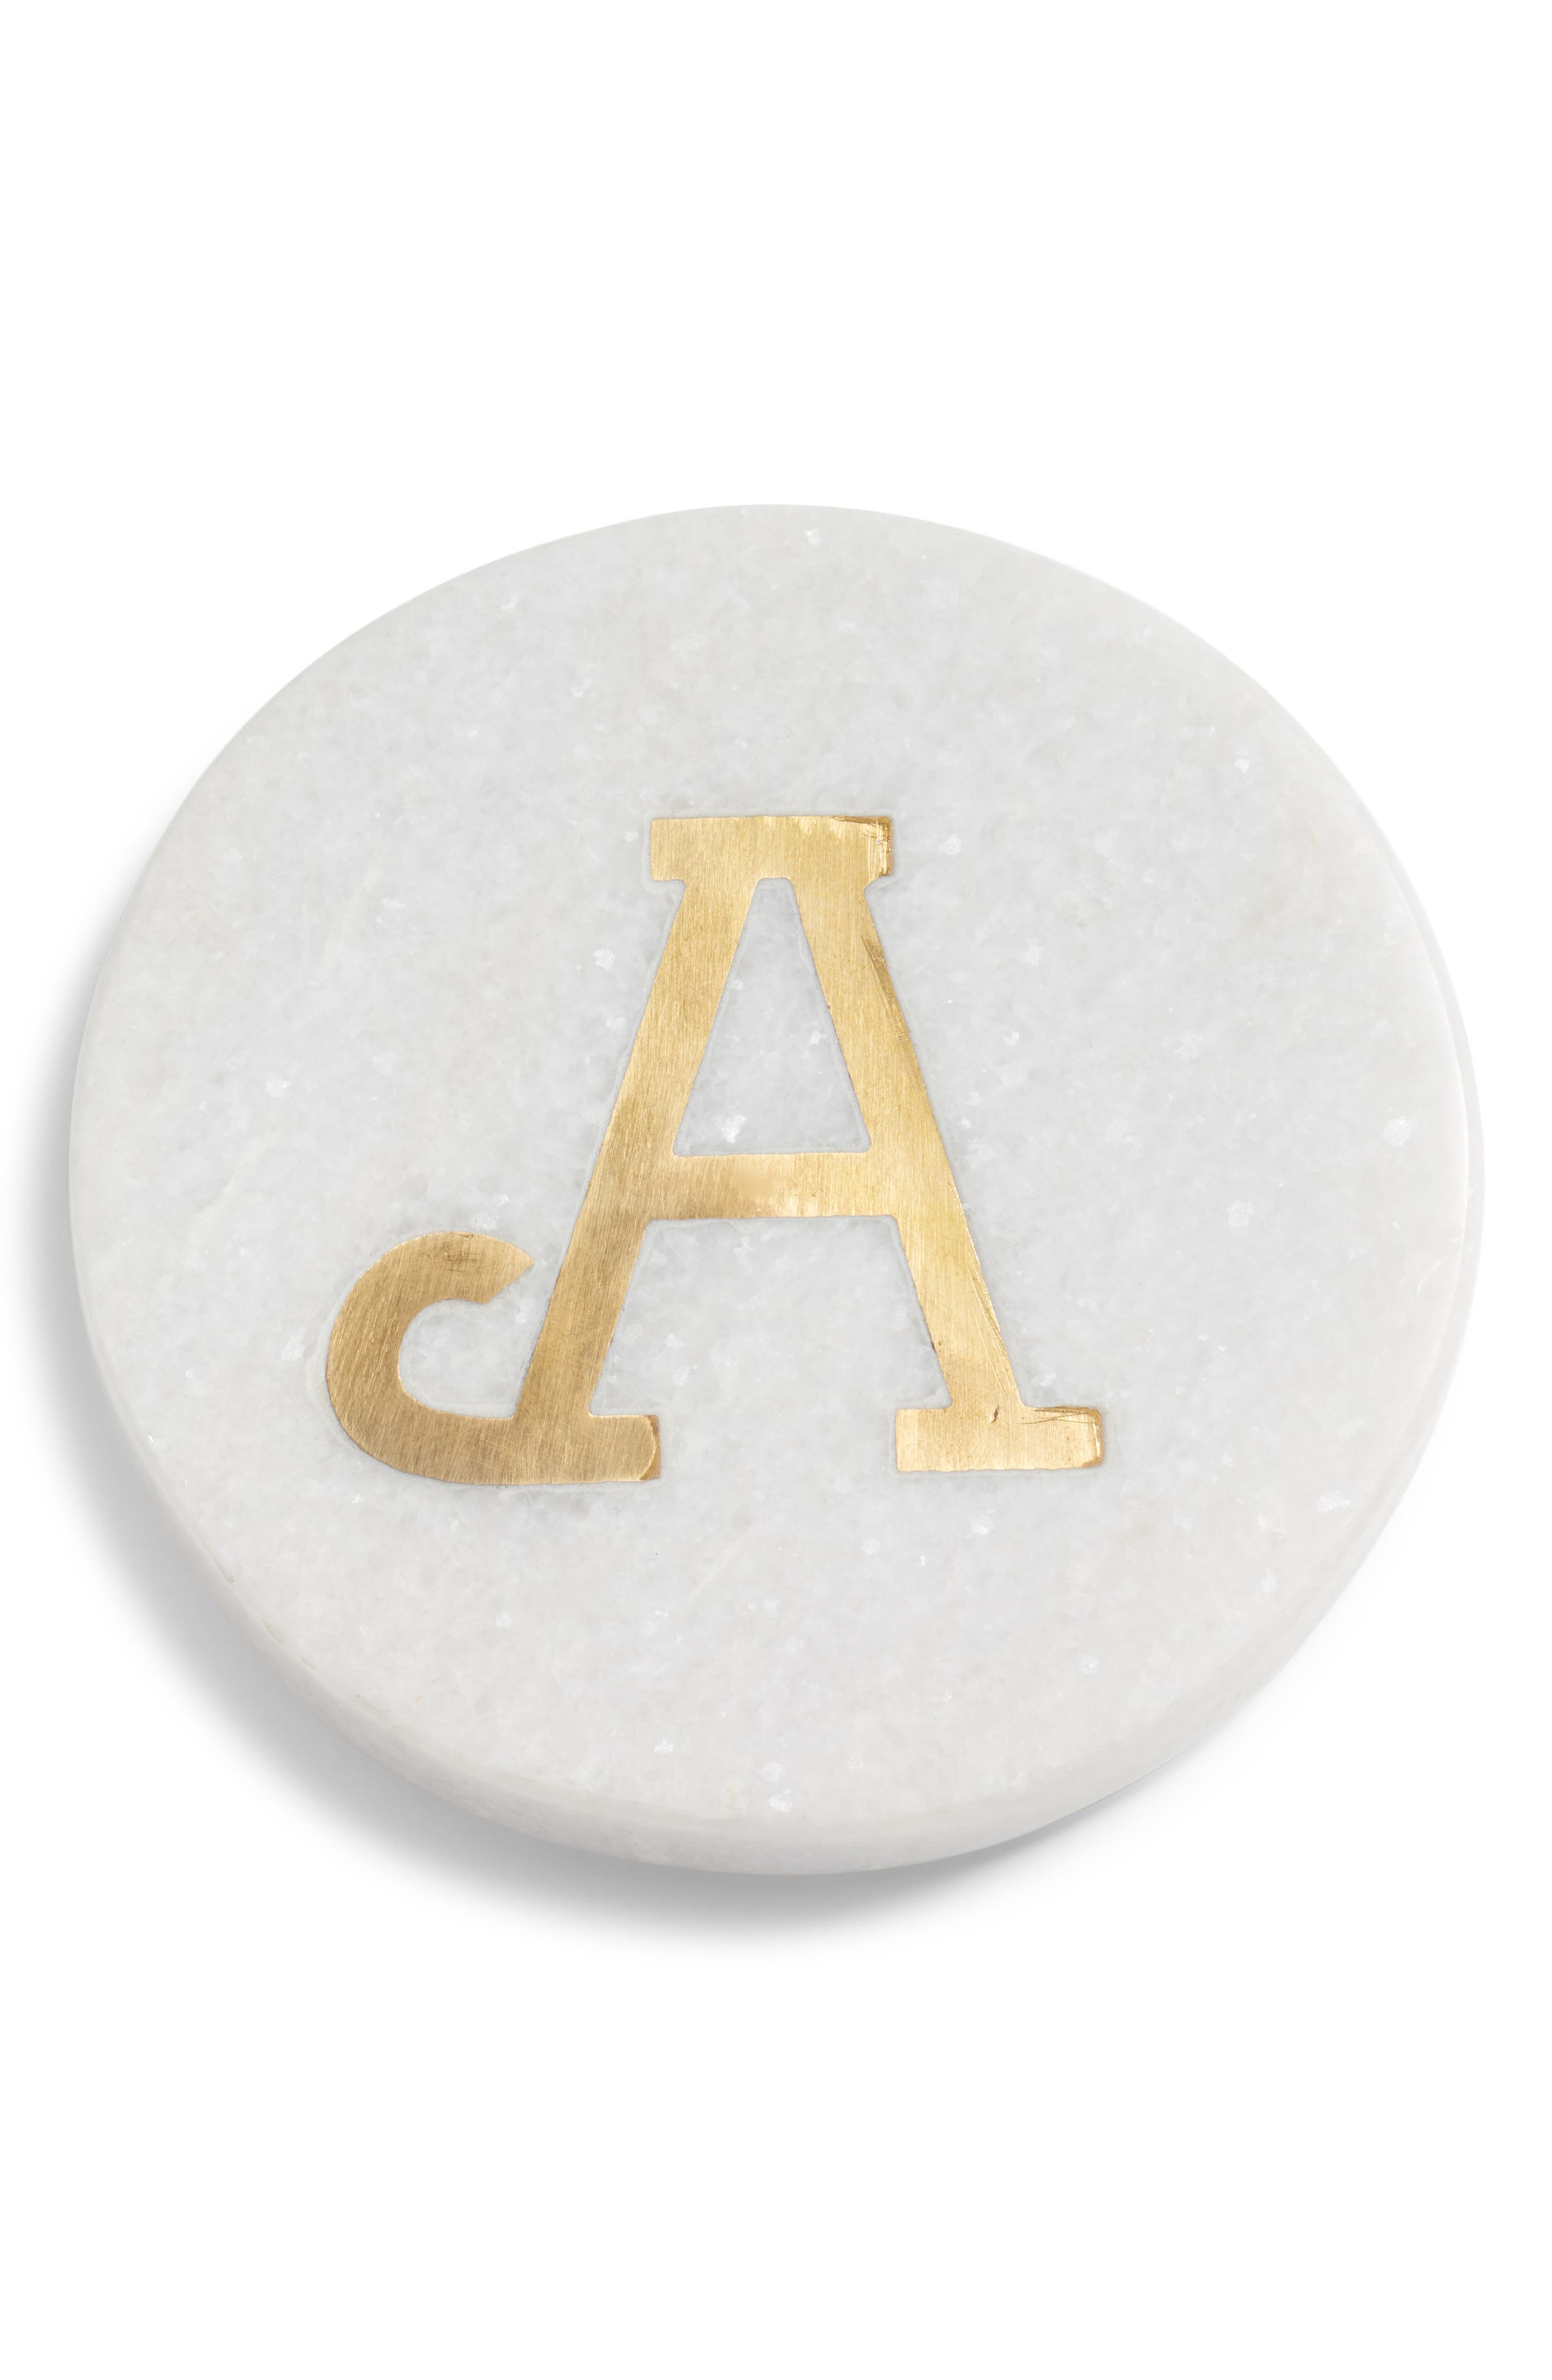 NORDSTROM AT HOME, Marble Monogram Coaster, Main thumbnail 1, color, WHITE/ GOLD A